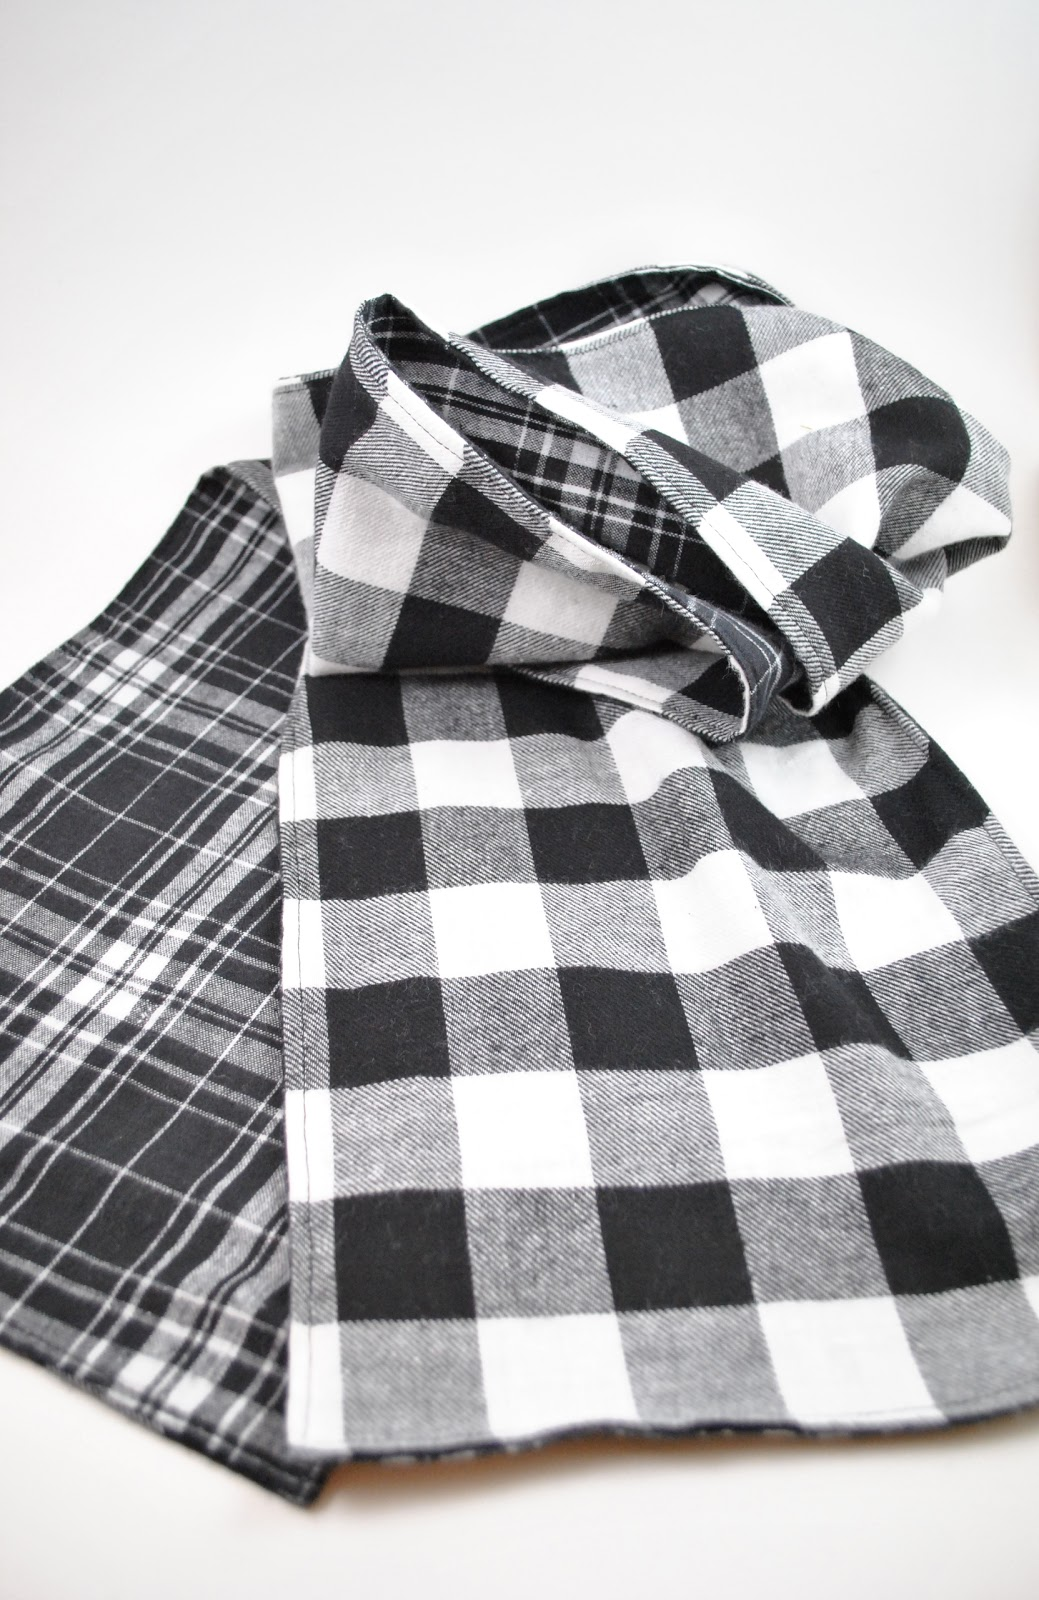 Double Sided Giant Magnetic Human Body Set: Clearlytangled.: Double-sided Flannel Scarf